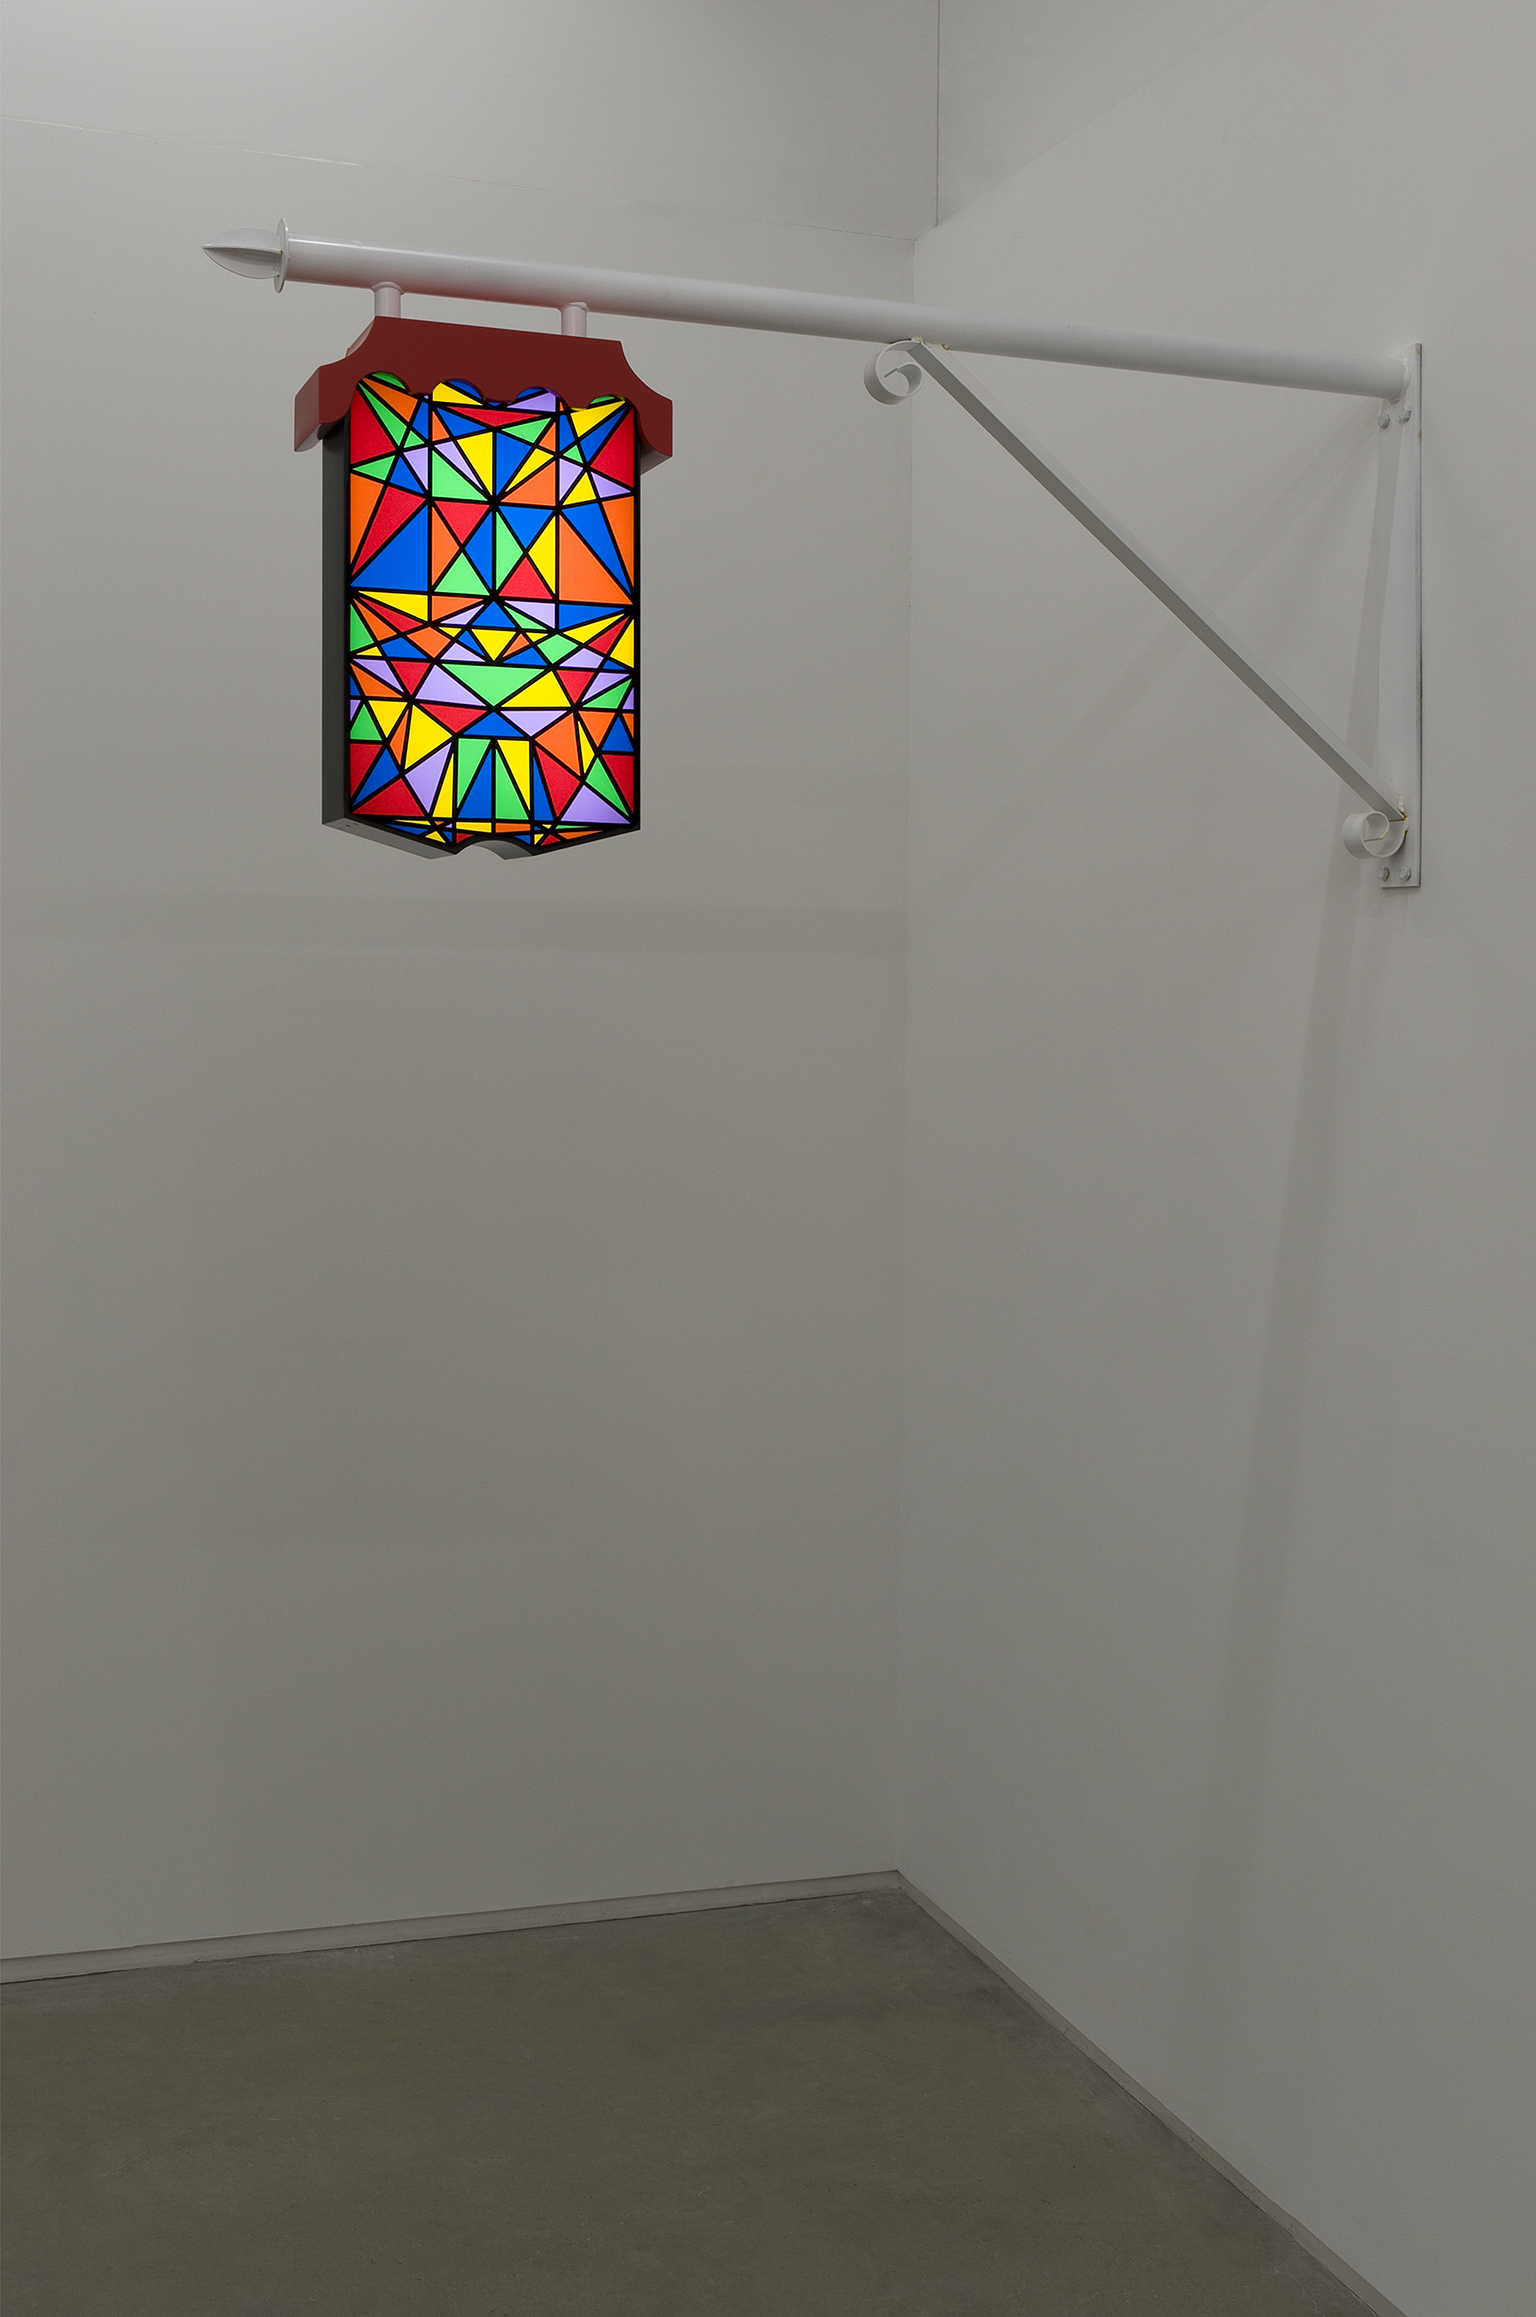 Alex Morrison, A Light in Town, 2010, metal, perspex and LED lighting system, 61 x 6 x 69 in. (155 x 15 x 174 cm) by